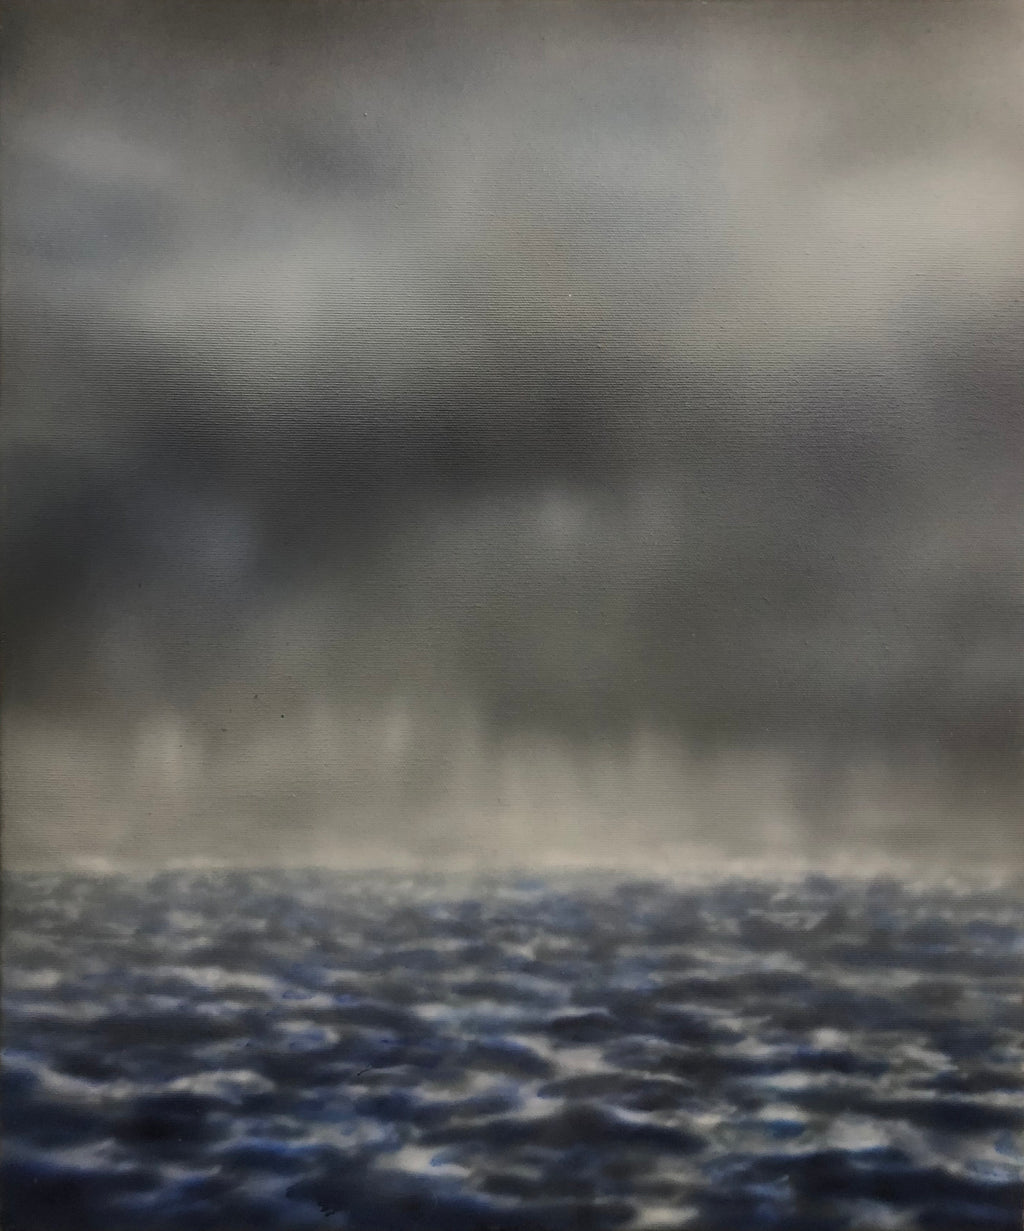 Michal Cernusak Painting North Sea - Michal Cernusak Painting North Sea - 5 Pieces Gallery - Contemporary Art & Photography